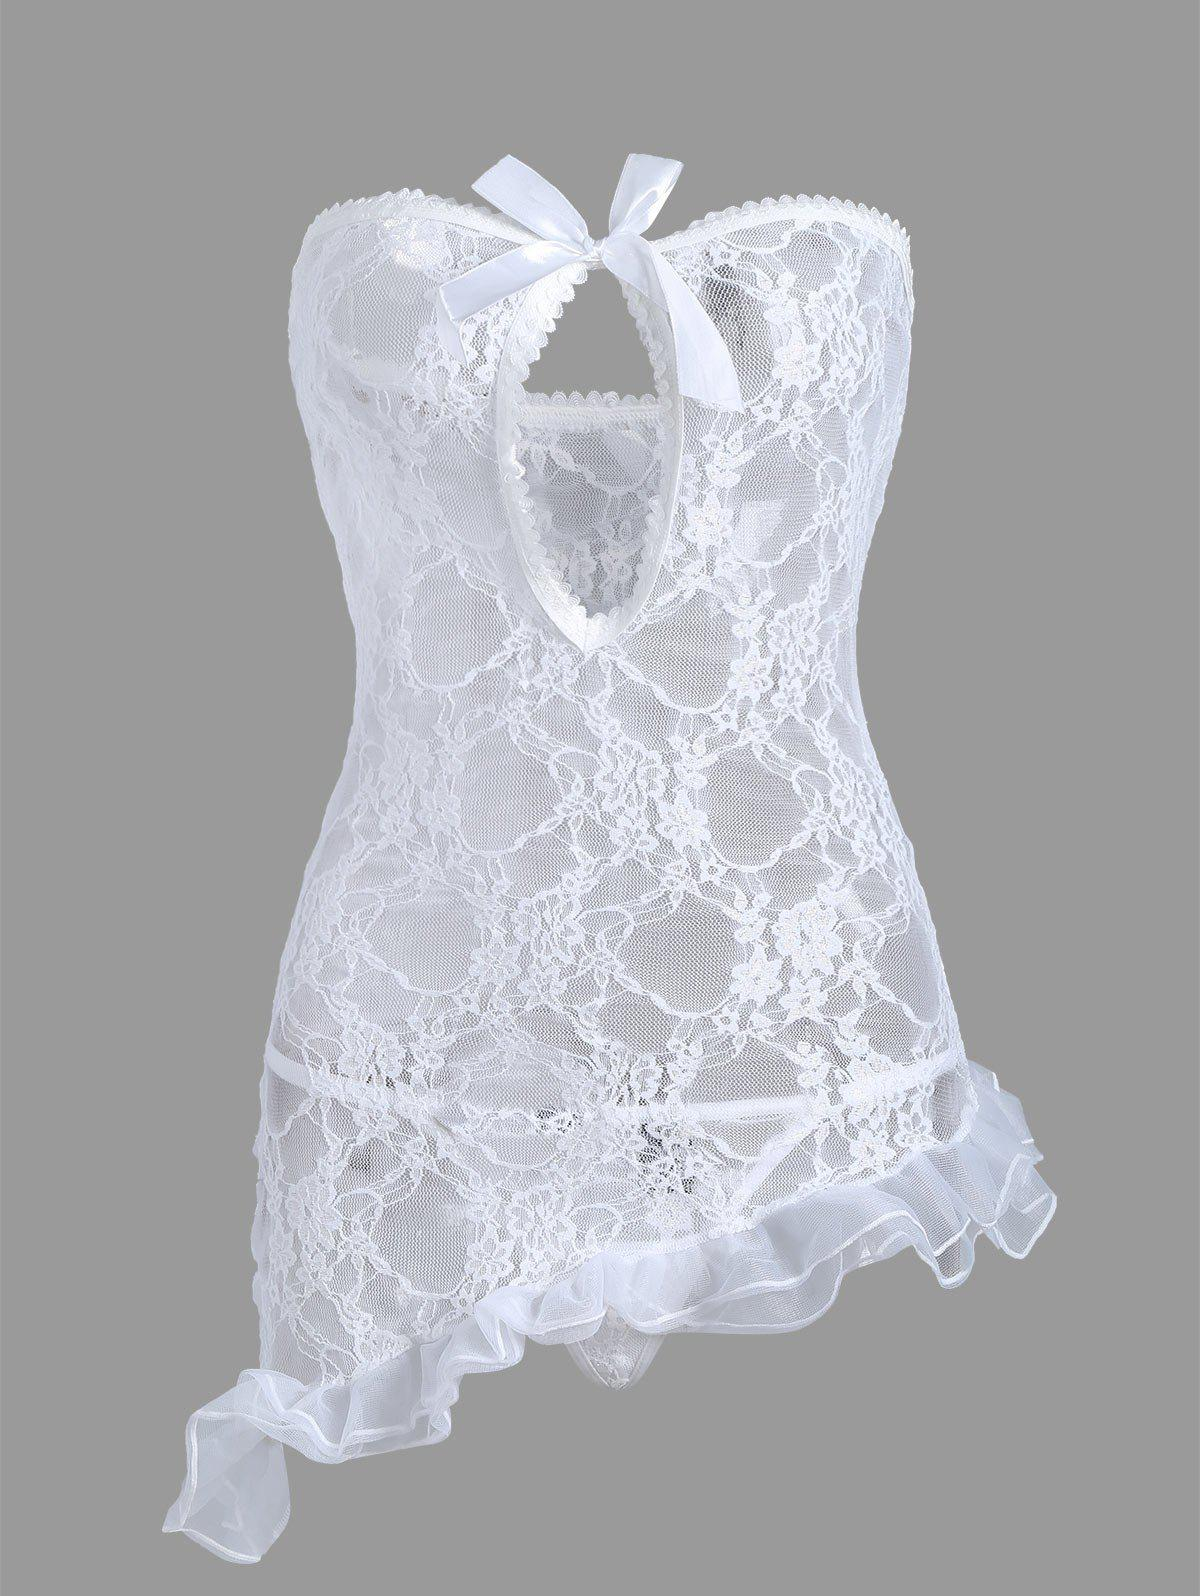 Strapless Lace Sheer Short Dress - WHITE L